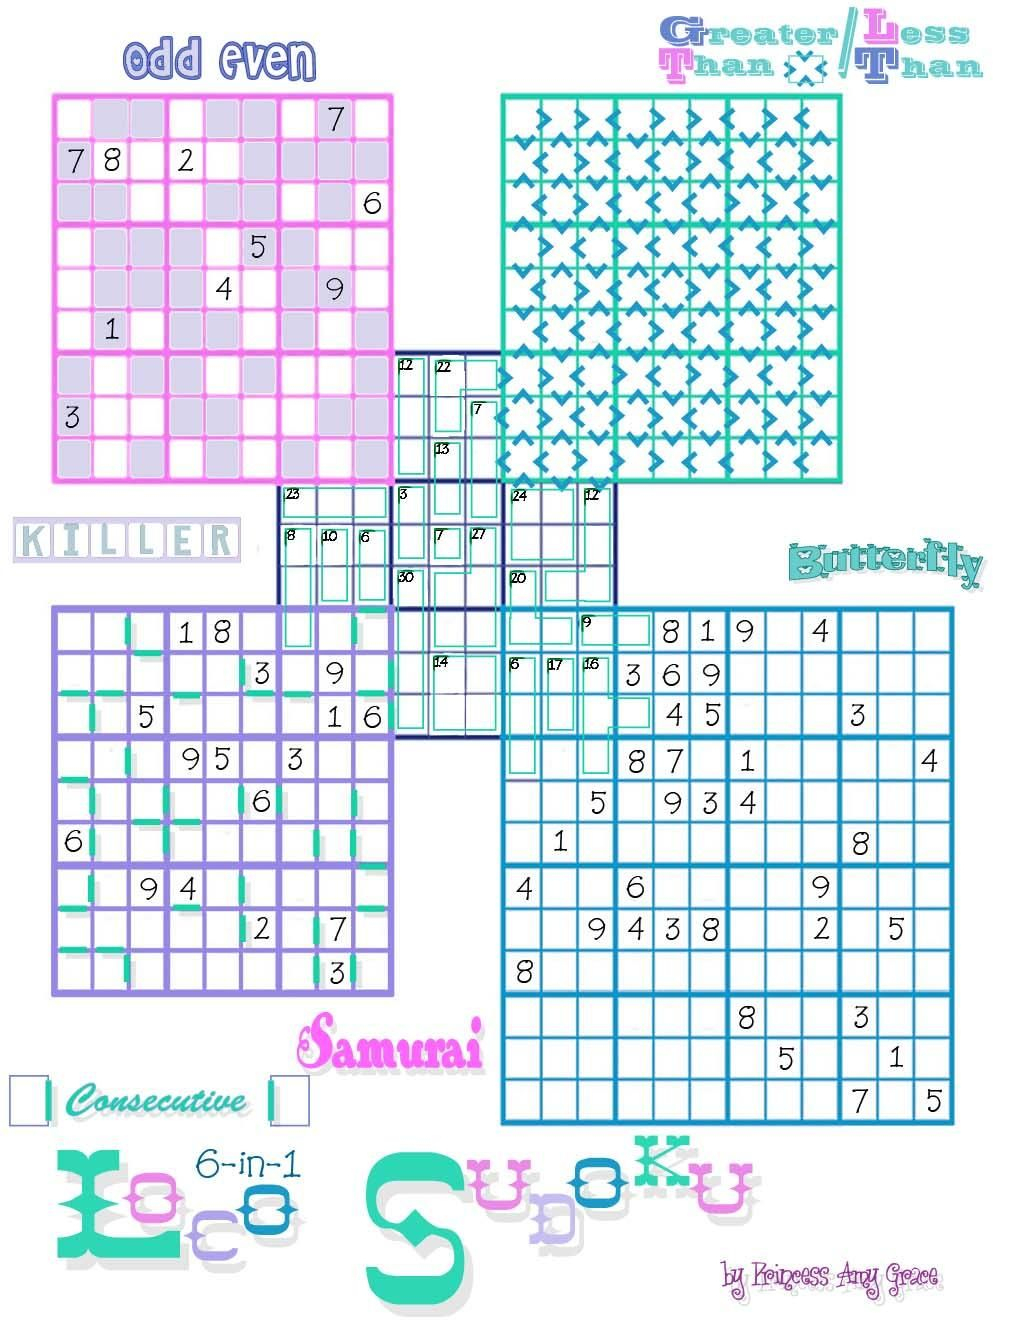 Loco Sudoku | Puzzles---Crossword-Sudoku-Jigsaw&???? | Puzzle - Printable Crossword Sudoku Puzzles